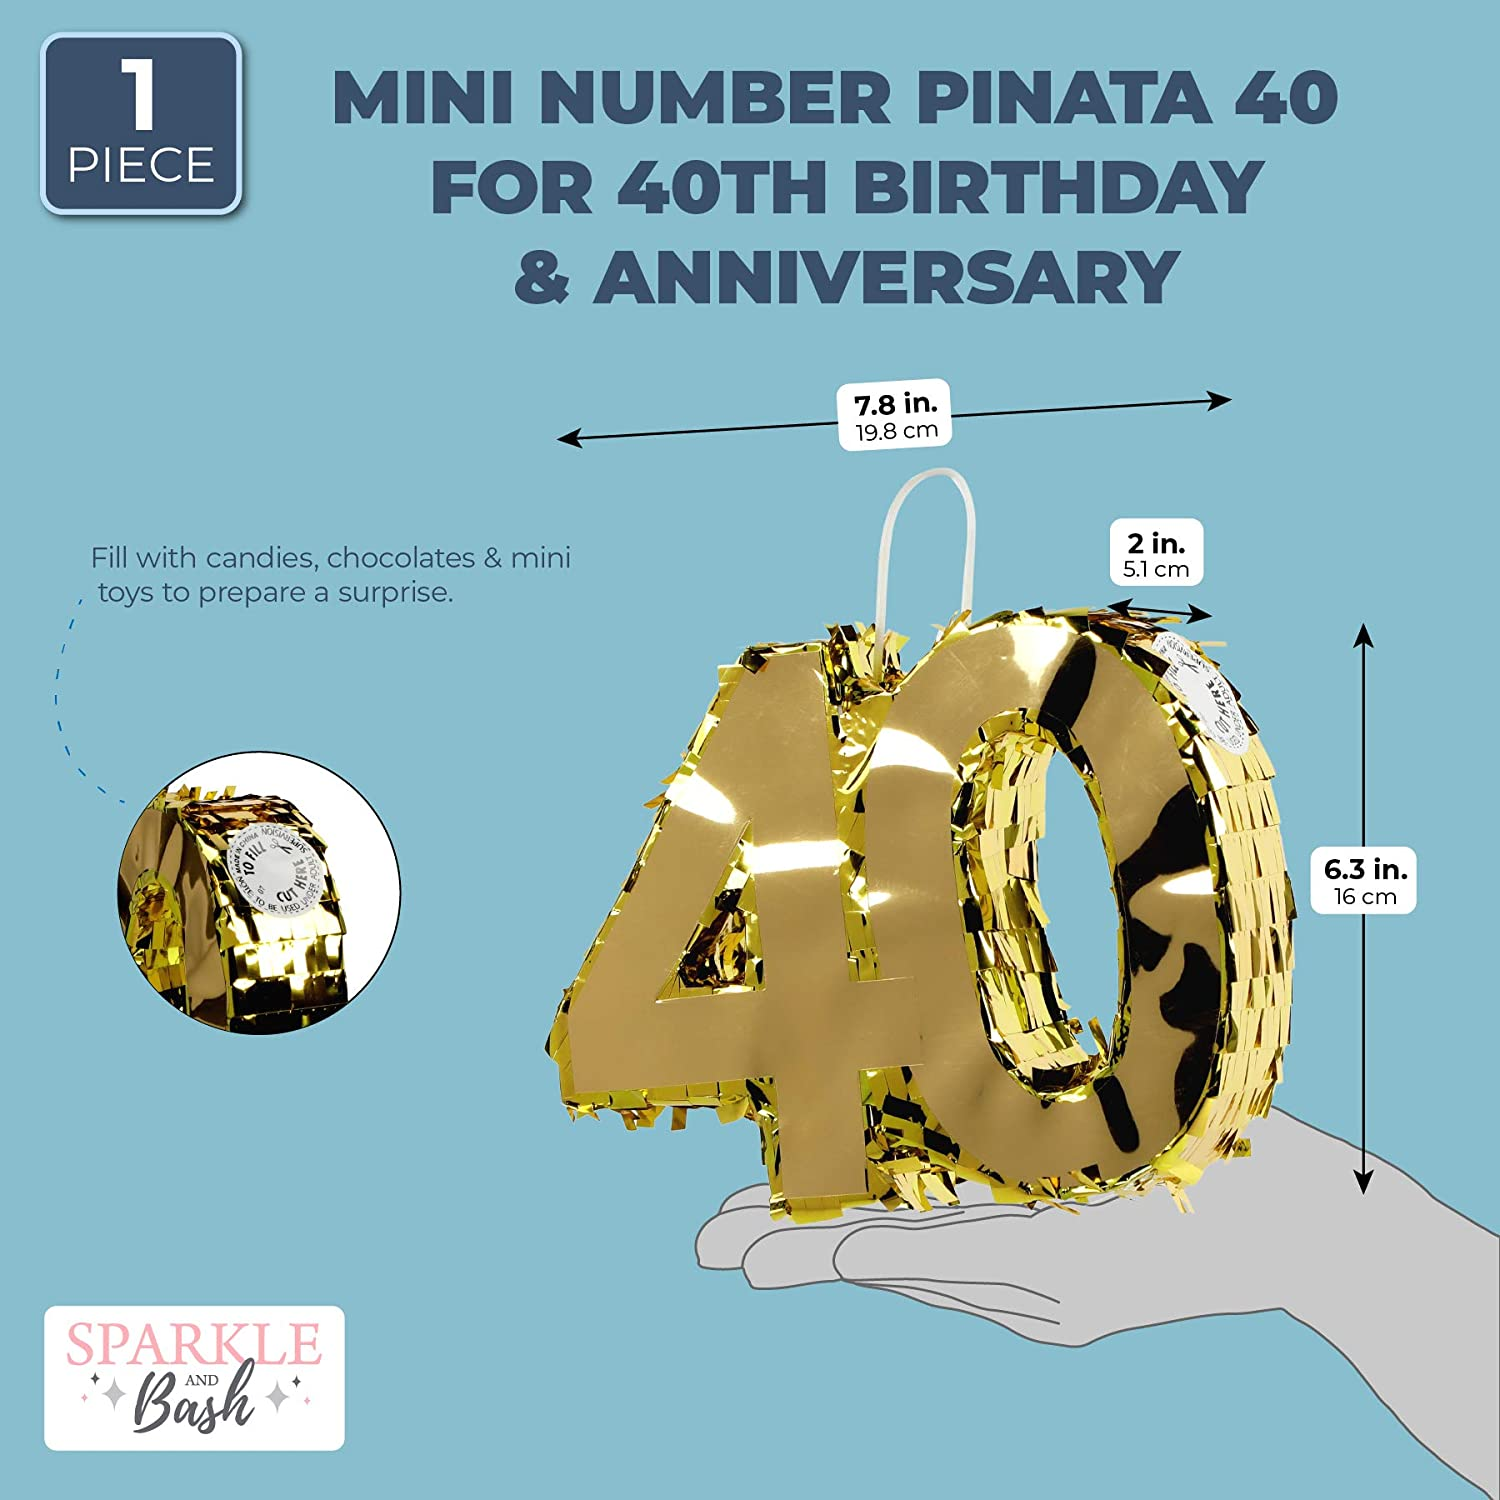 Mini Gold Pinata for 40th Birthday Party Number 40 7.8 x 6.3 x 2 Inches